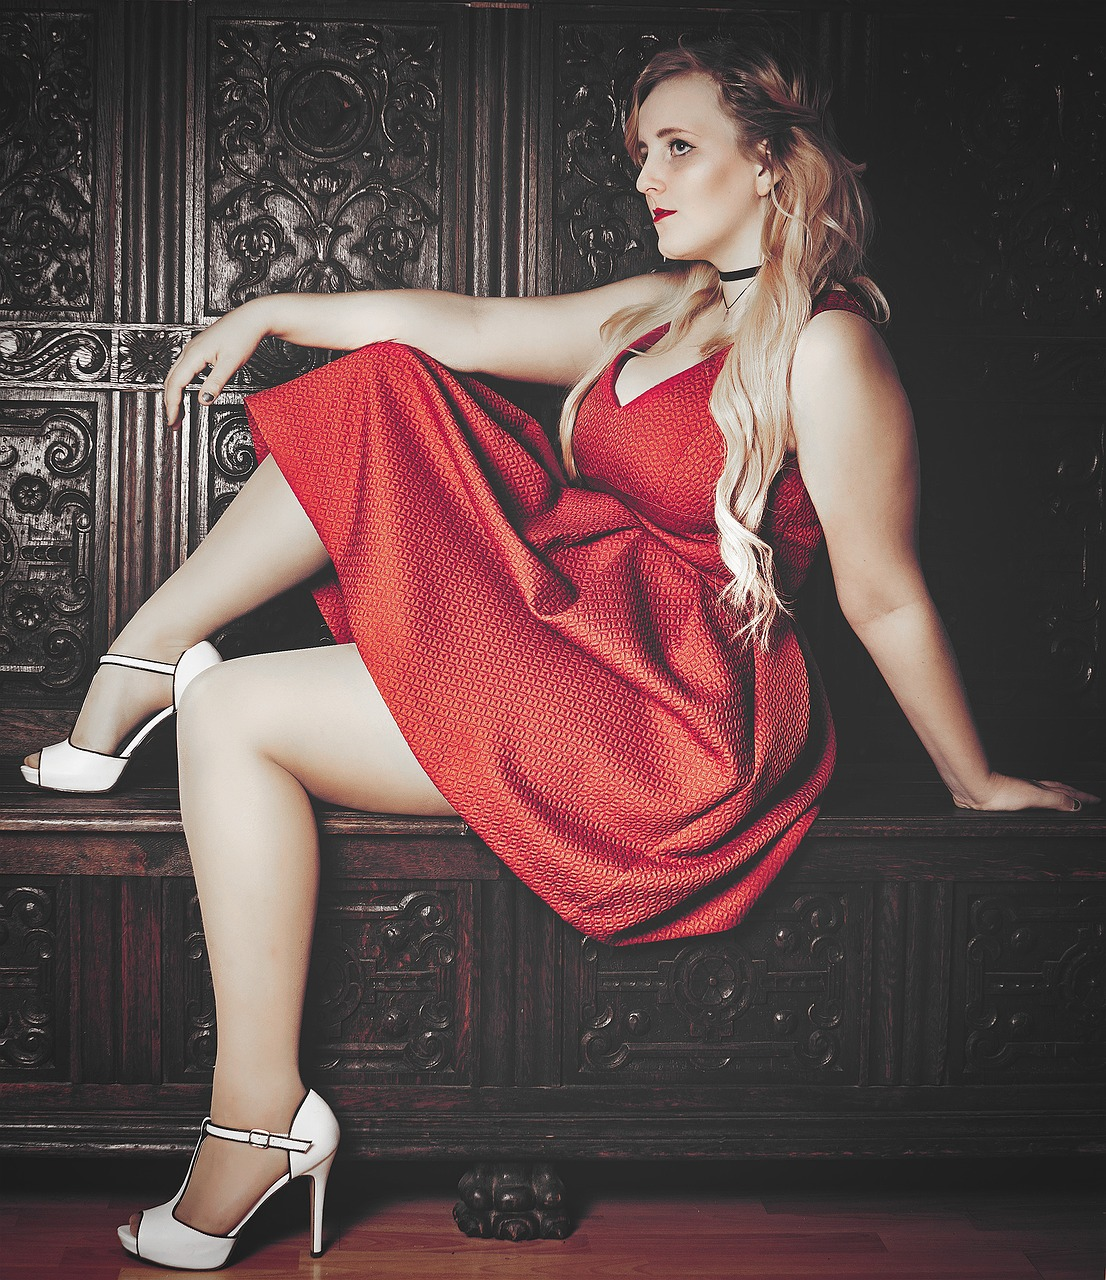 blond red dress high heels free photo